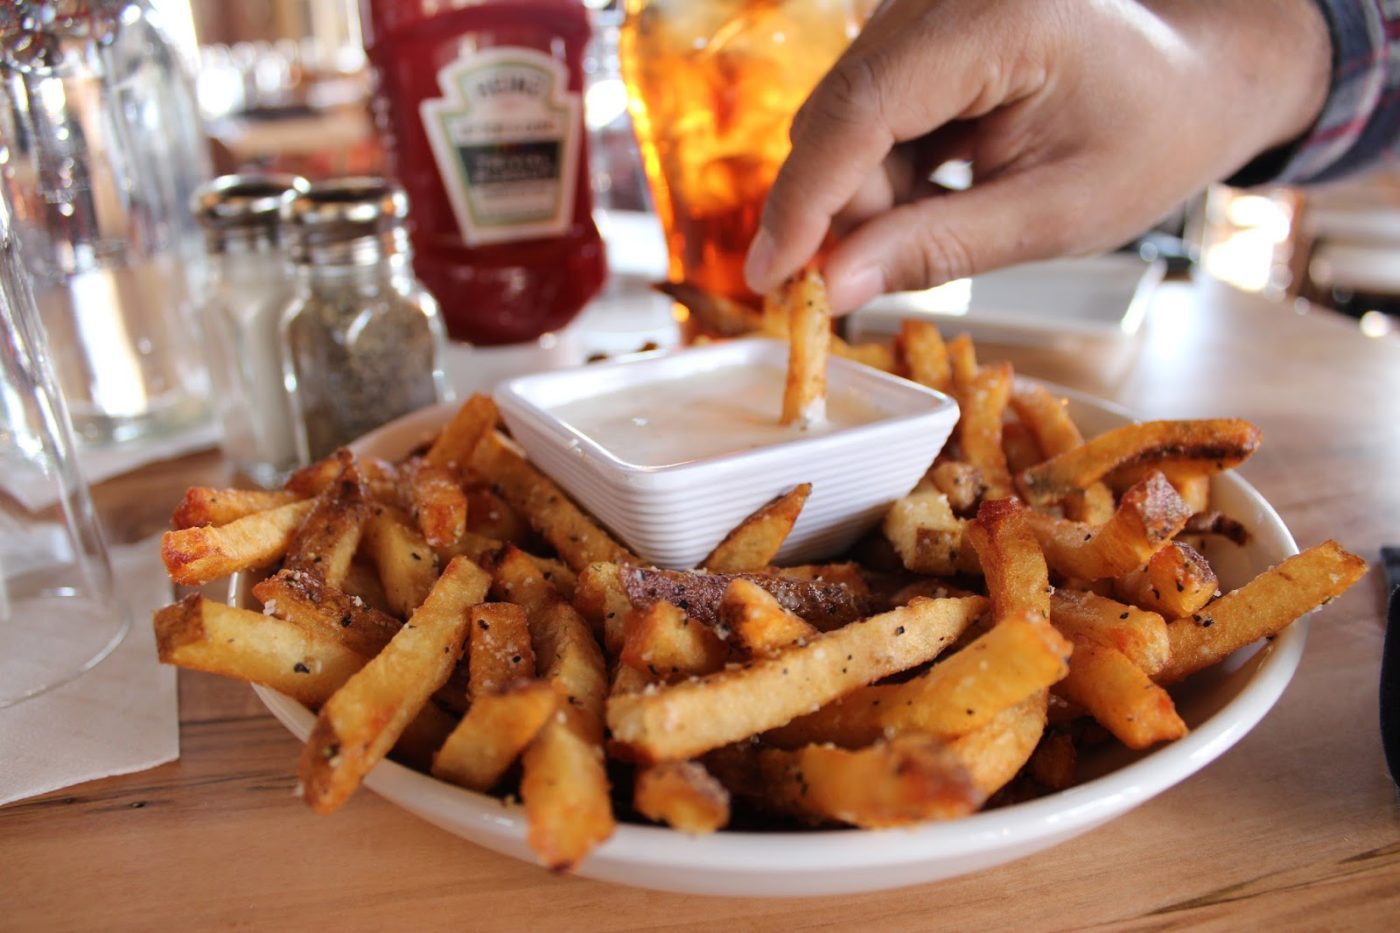 National french fry day in chattanooga eatdrinkolic another place that offers elevated french fry flavors stir also has truffle parmesan fries and theyre absolutely delicious grab an order of their fries solutioingenieria Images